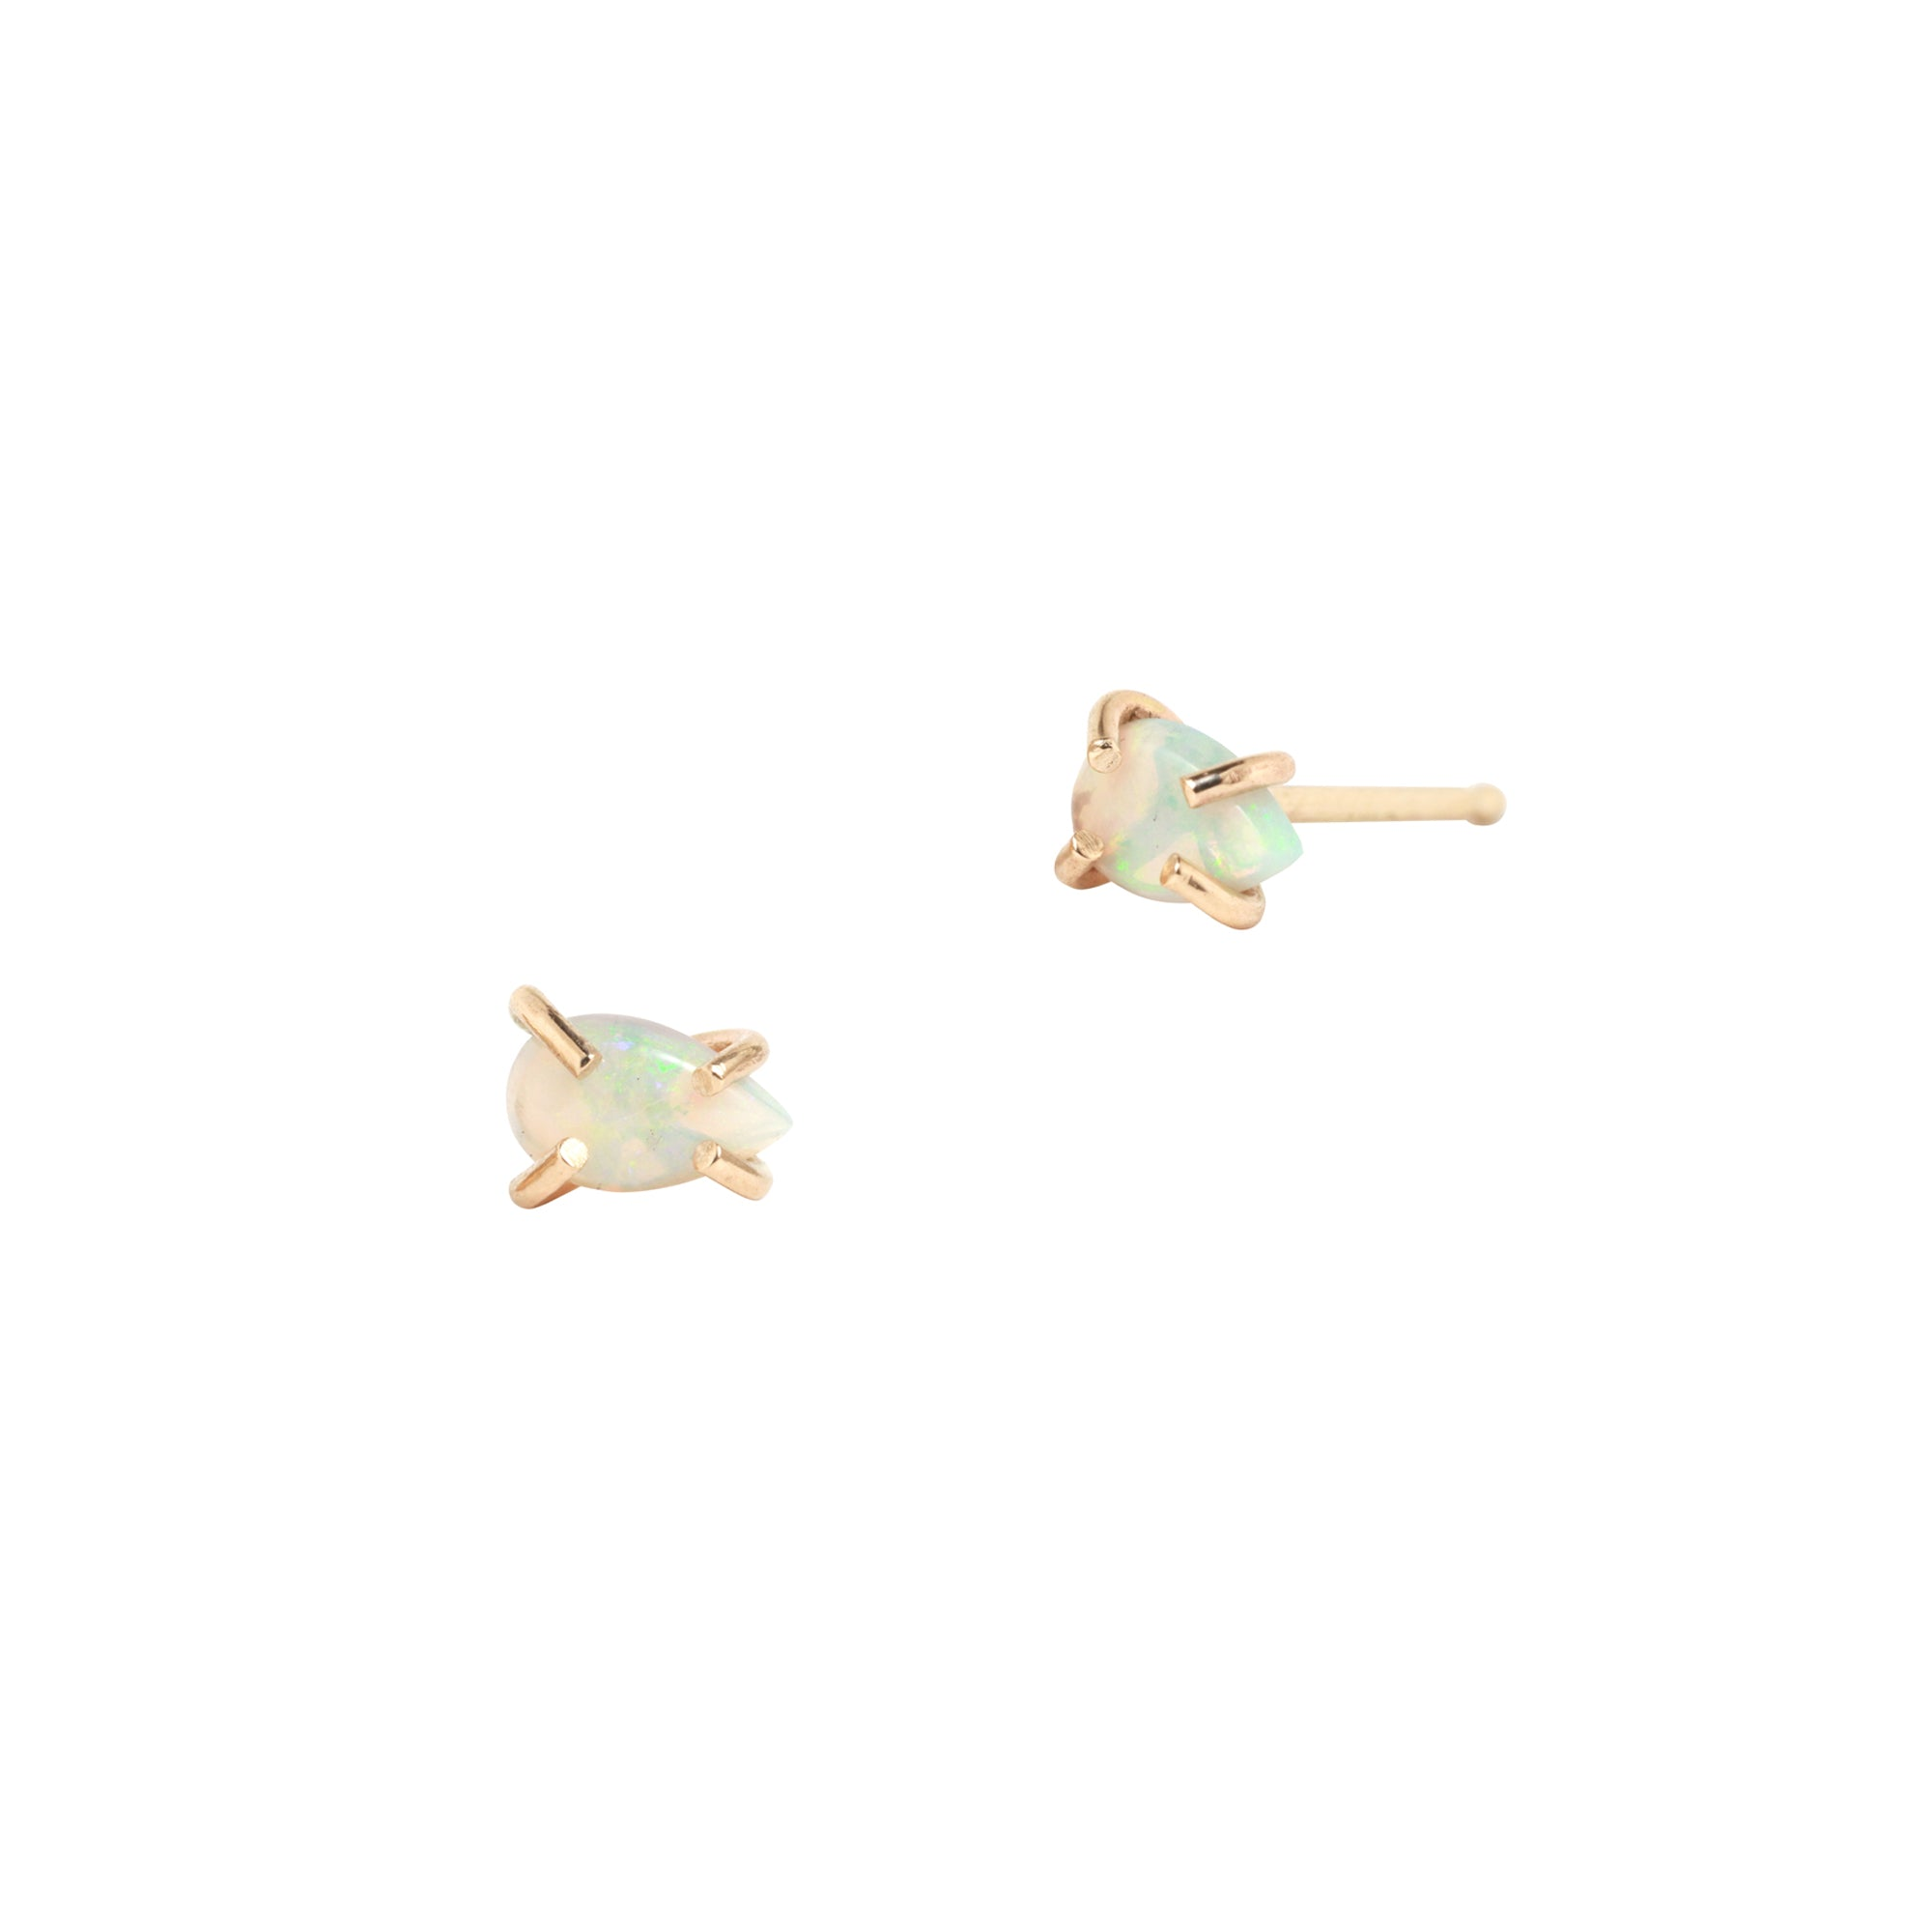 Melissa Joy Manning Prong Set Studs - Teardrop Opal - Earrings - Broken English Jewelry